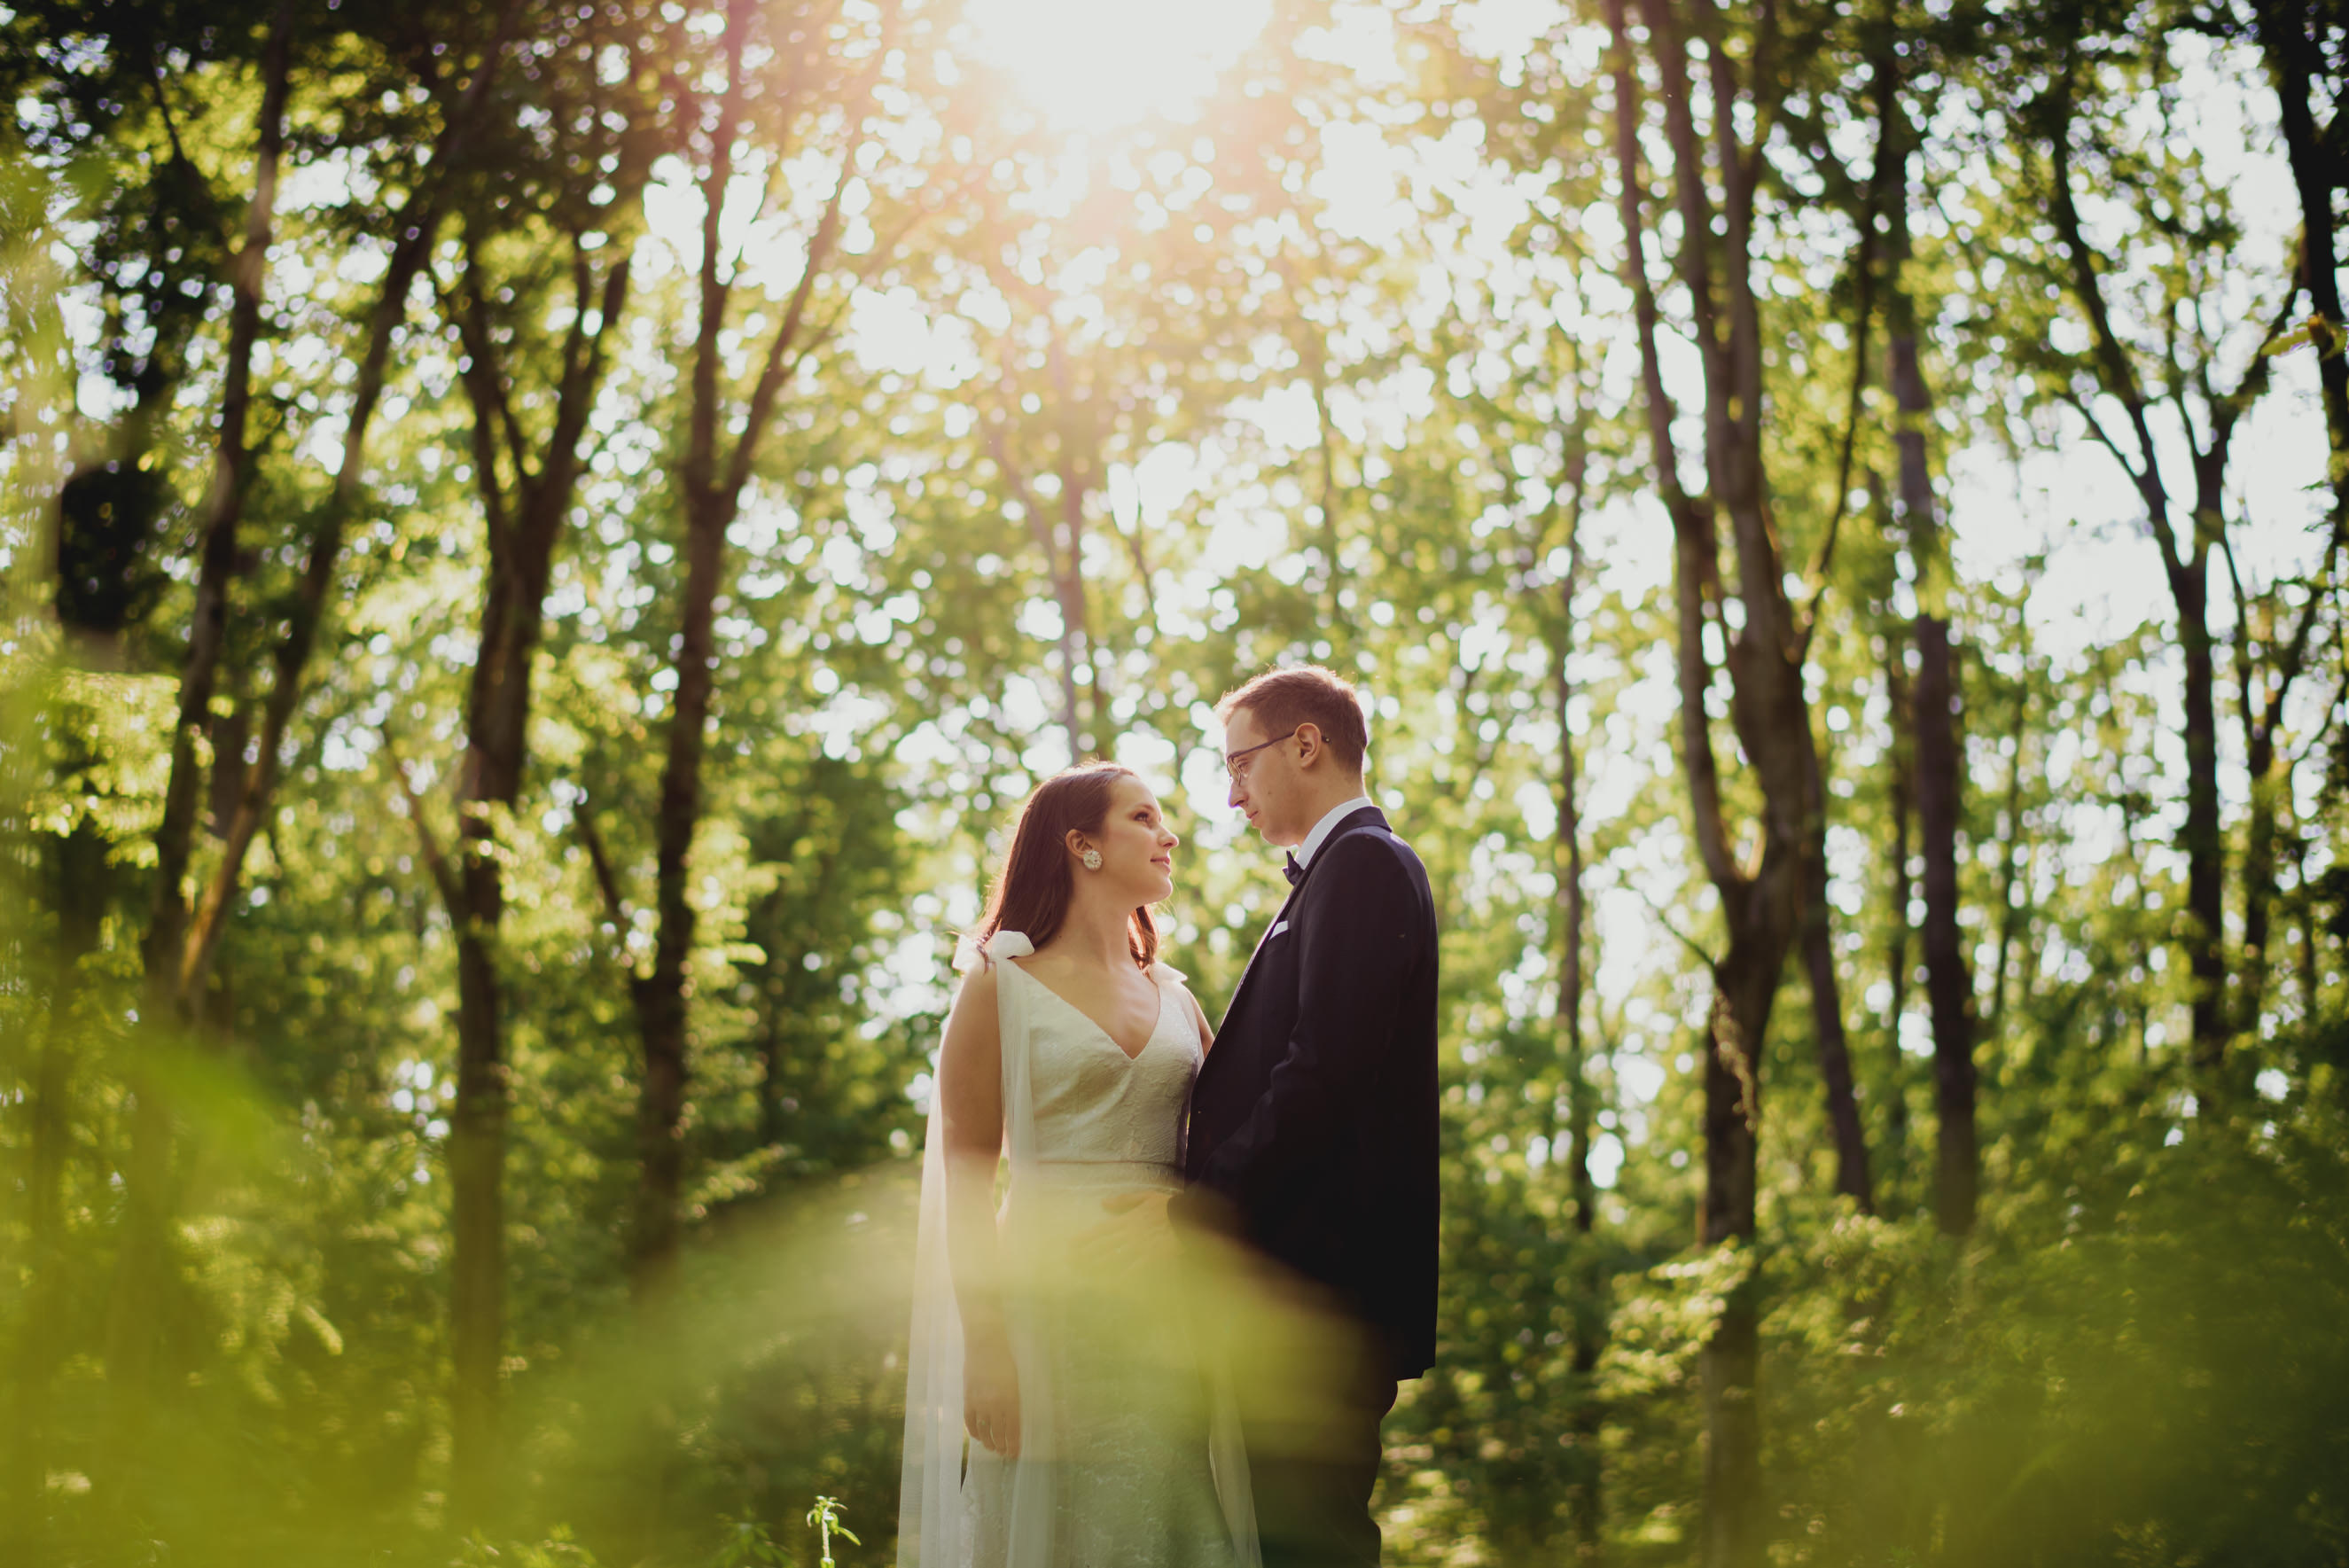 bride and groom standing in the middle of the wood being backlight by the sun